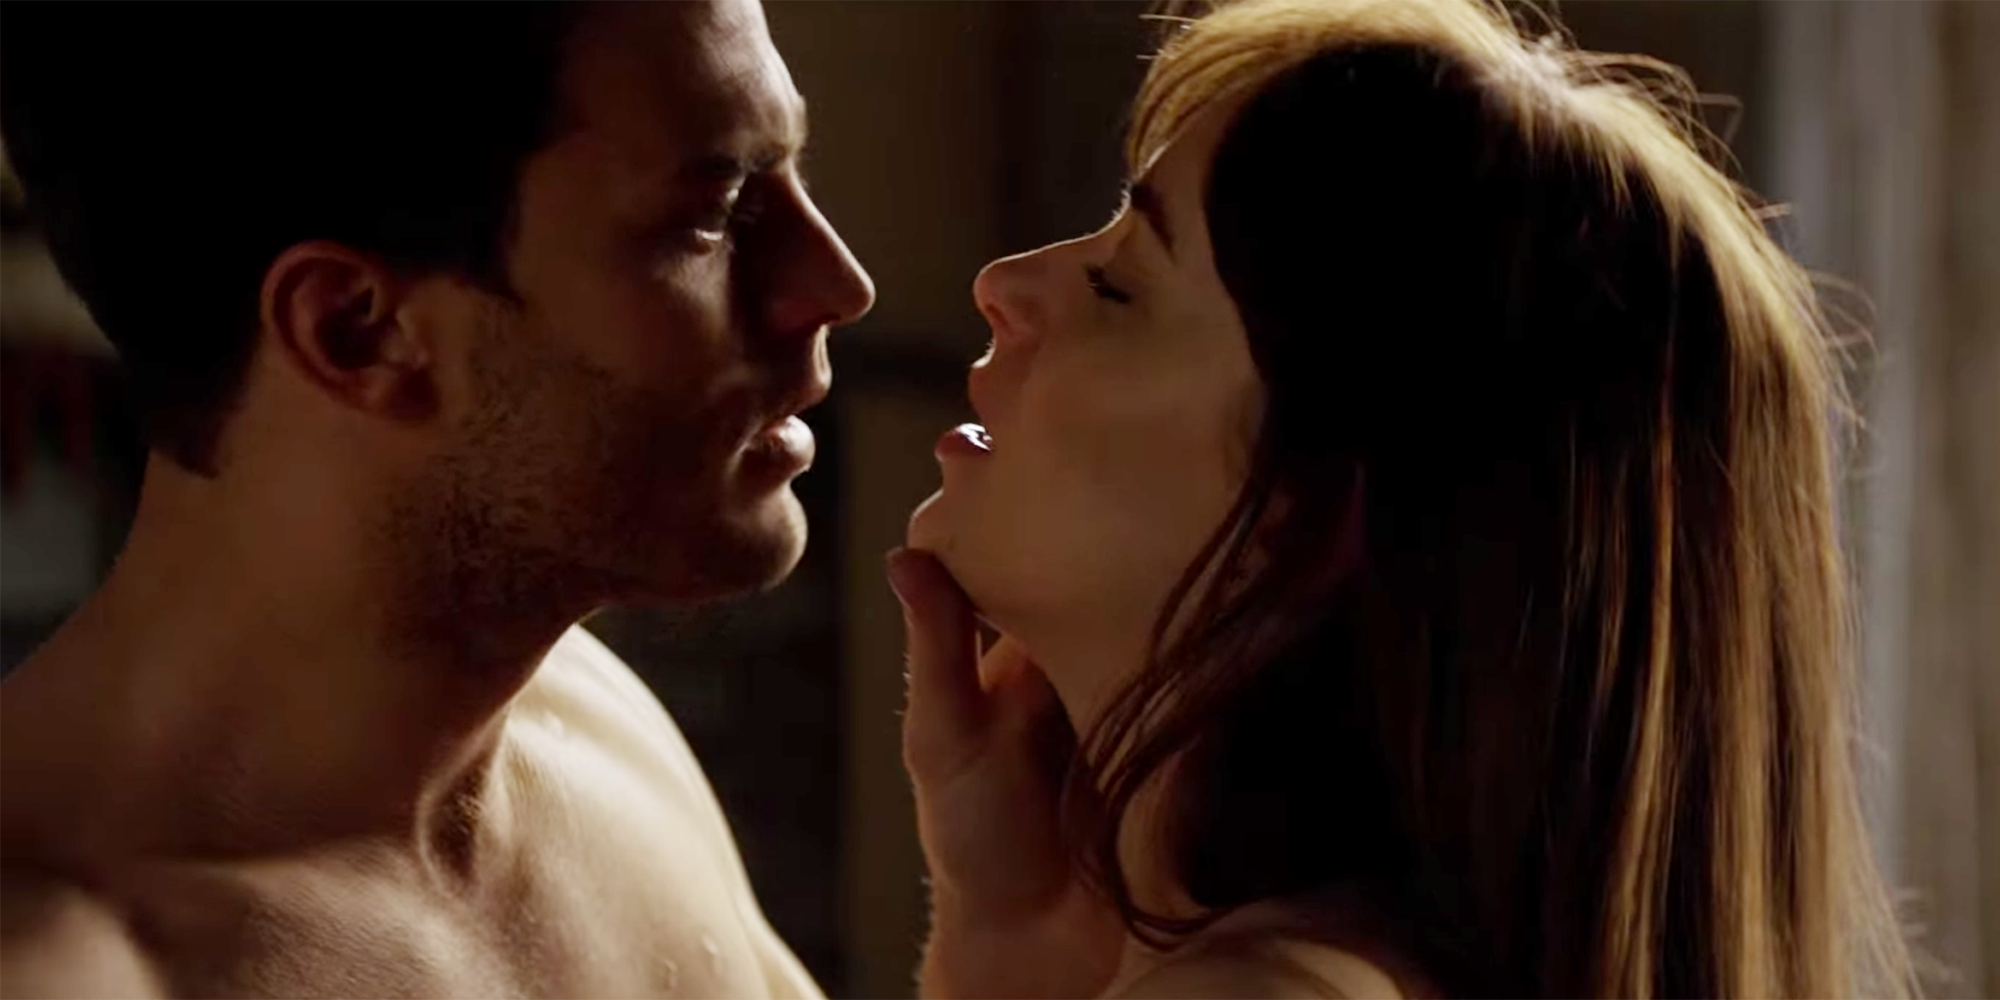 Fifty shades of grey releases an even sexier trailer